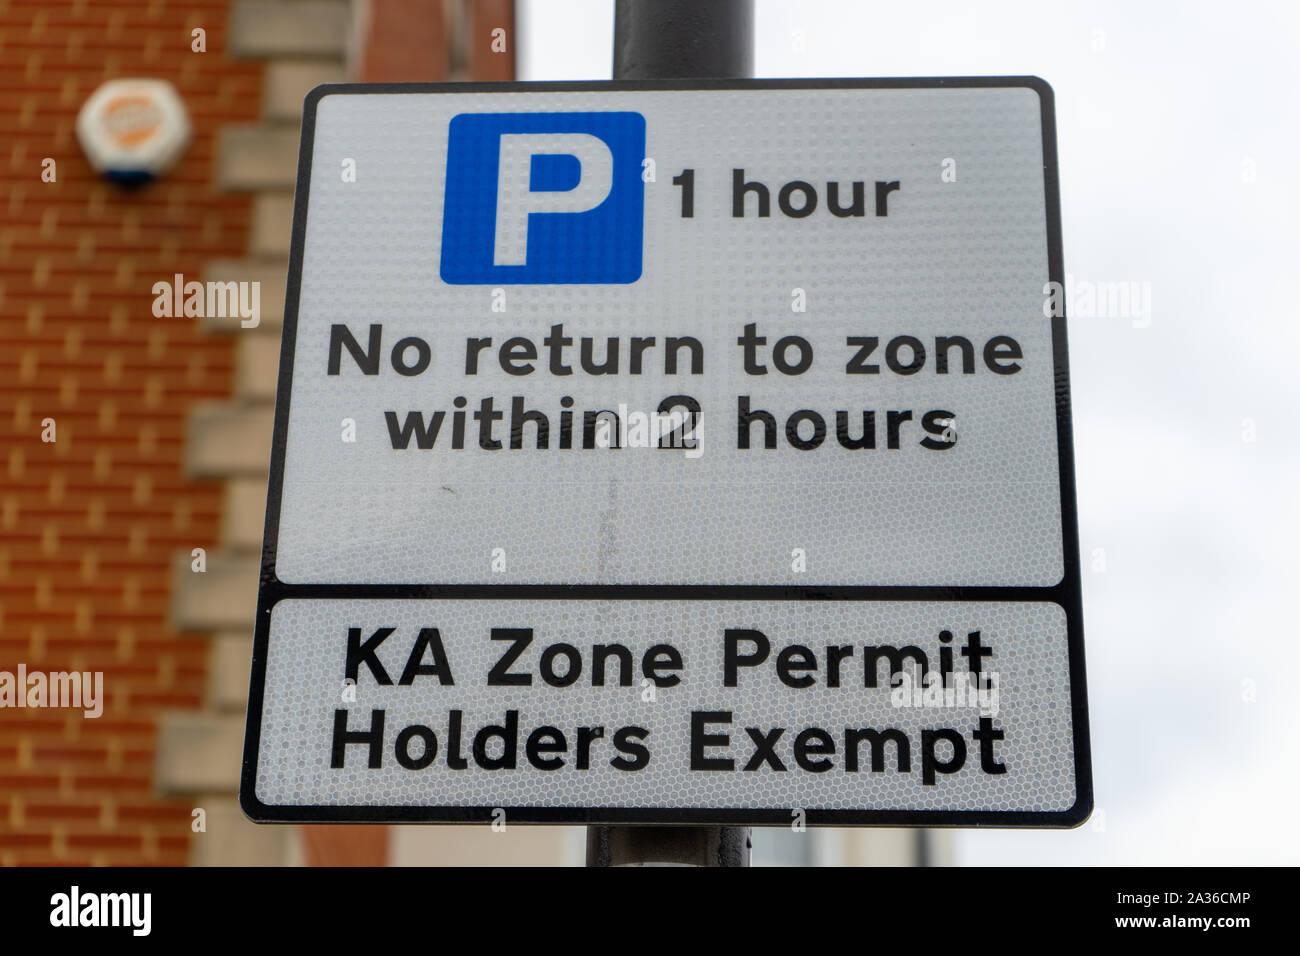 Parking Permit High Resolution Stock Photography And Images Alamy